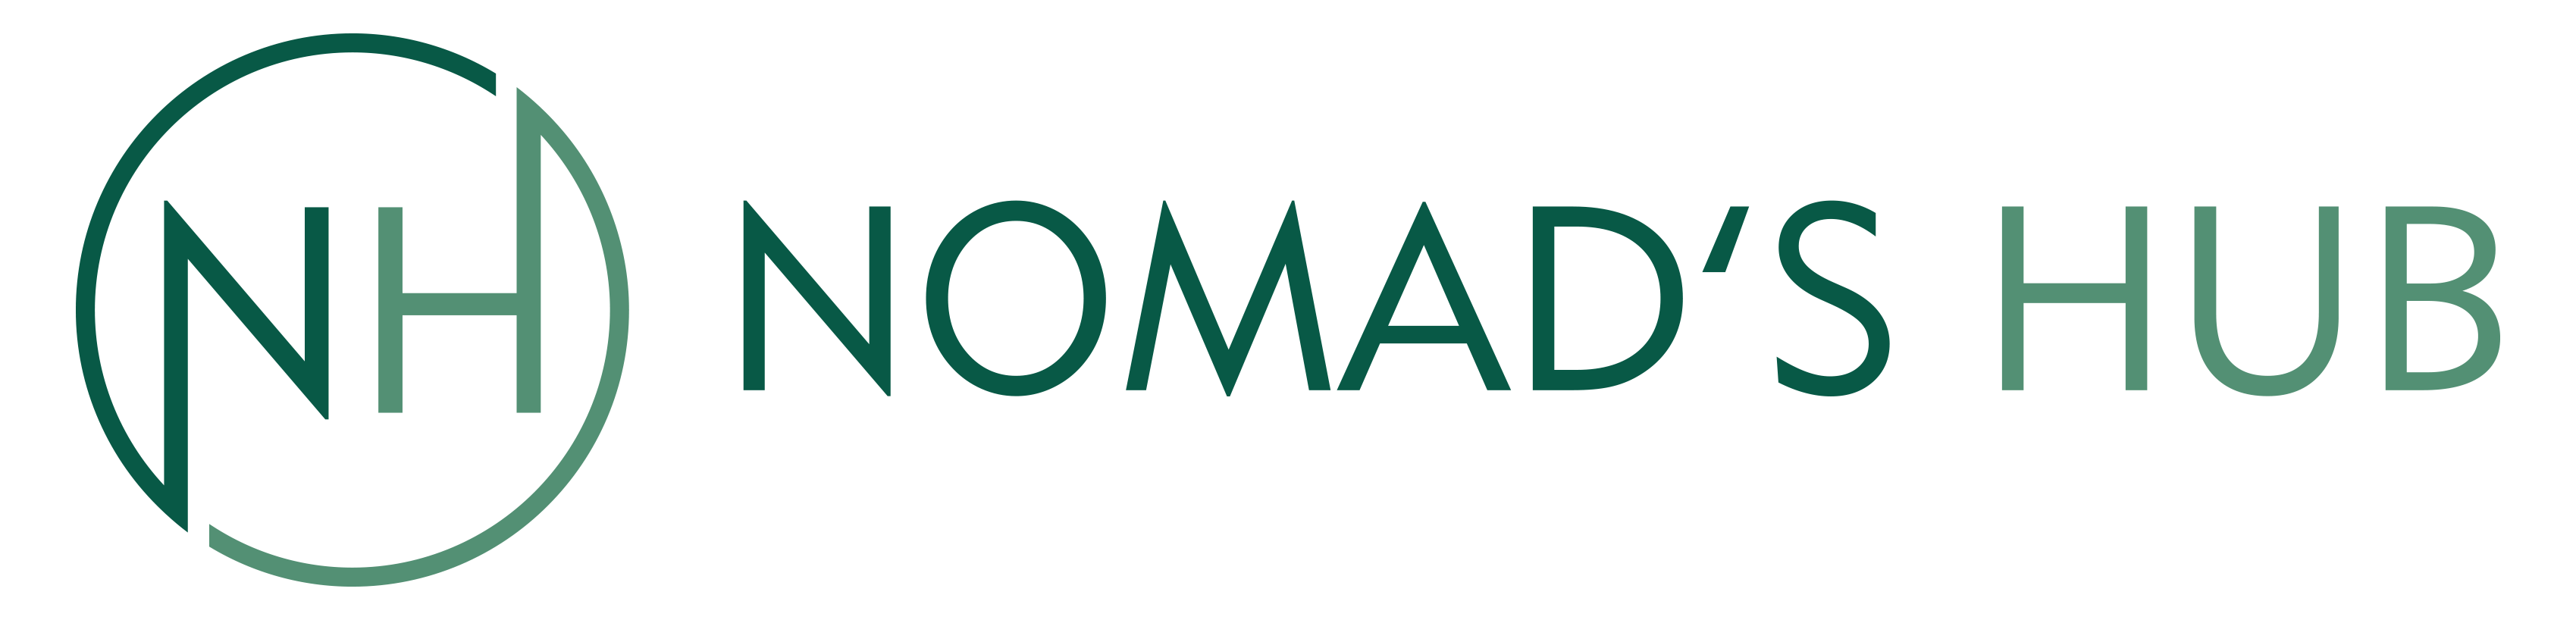 Nomads hub – Co-Working and Co-Living Hostel Cebu